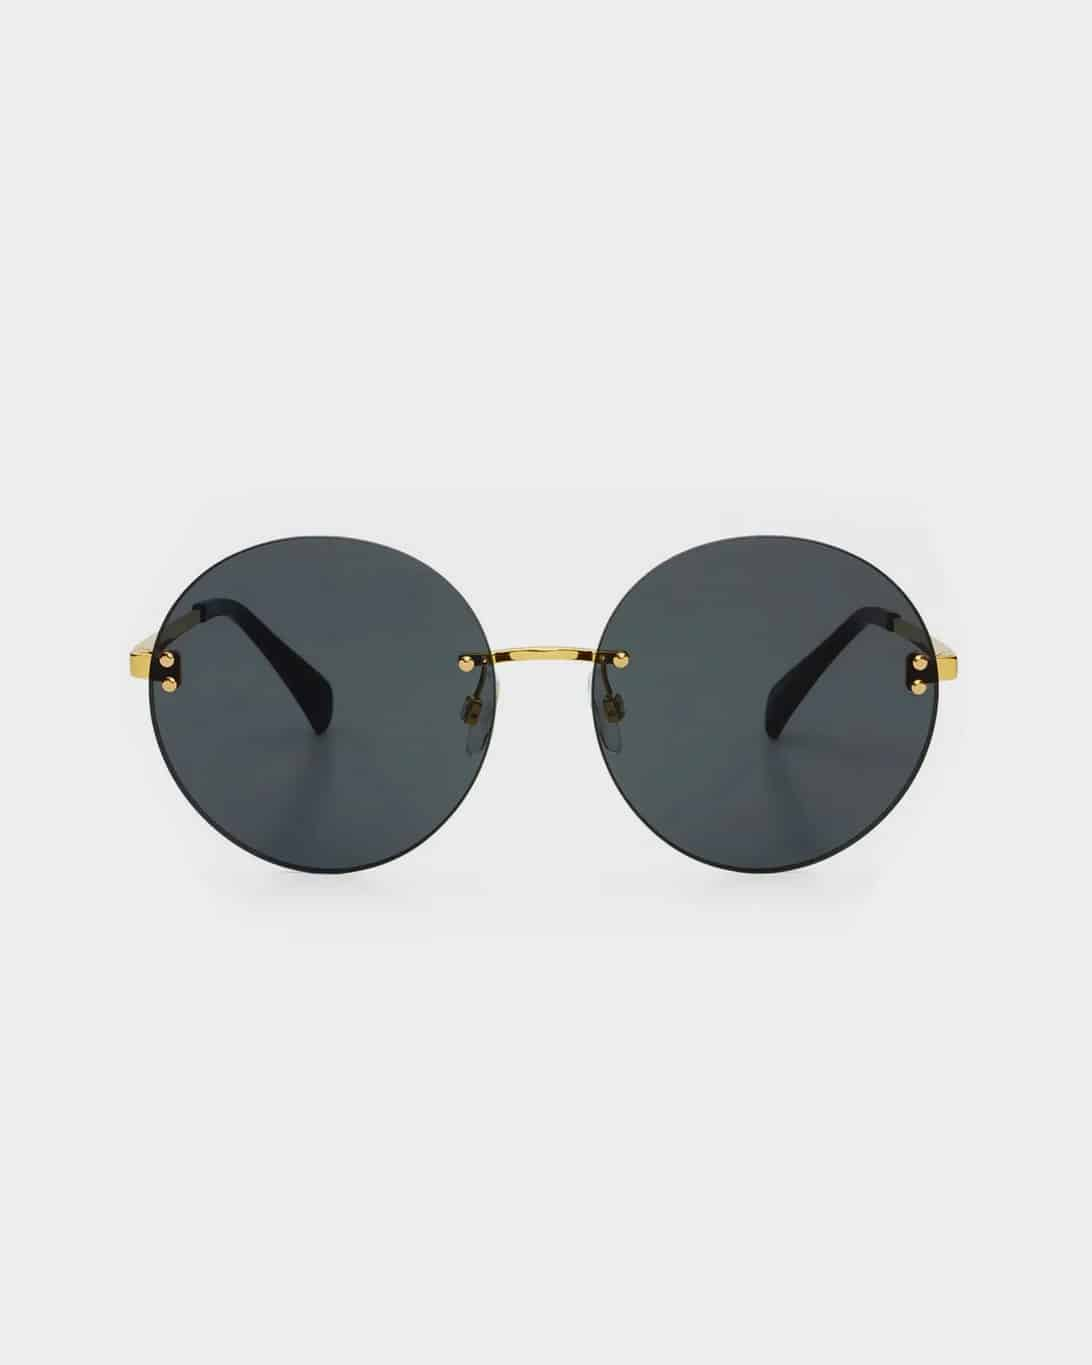 Gold framed sunglasses with grey lenses